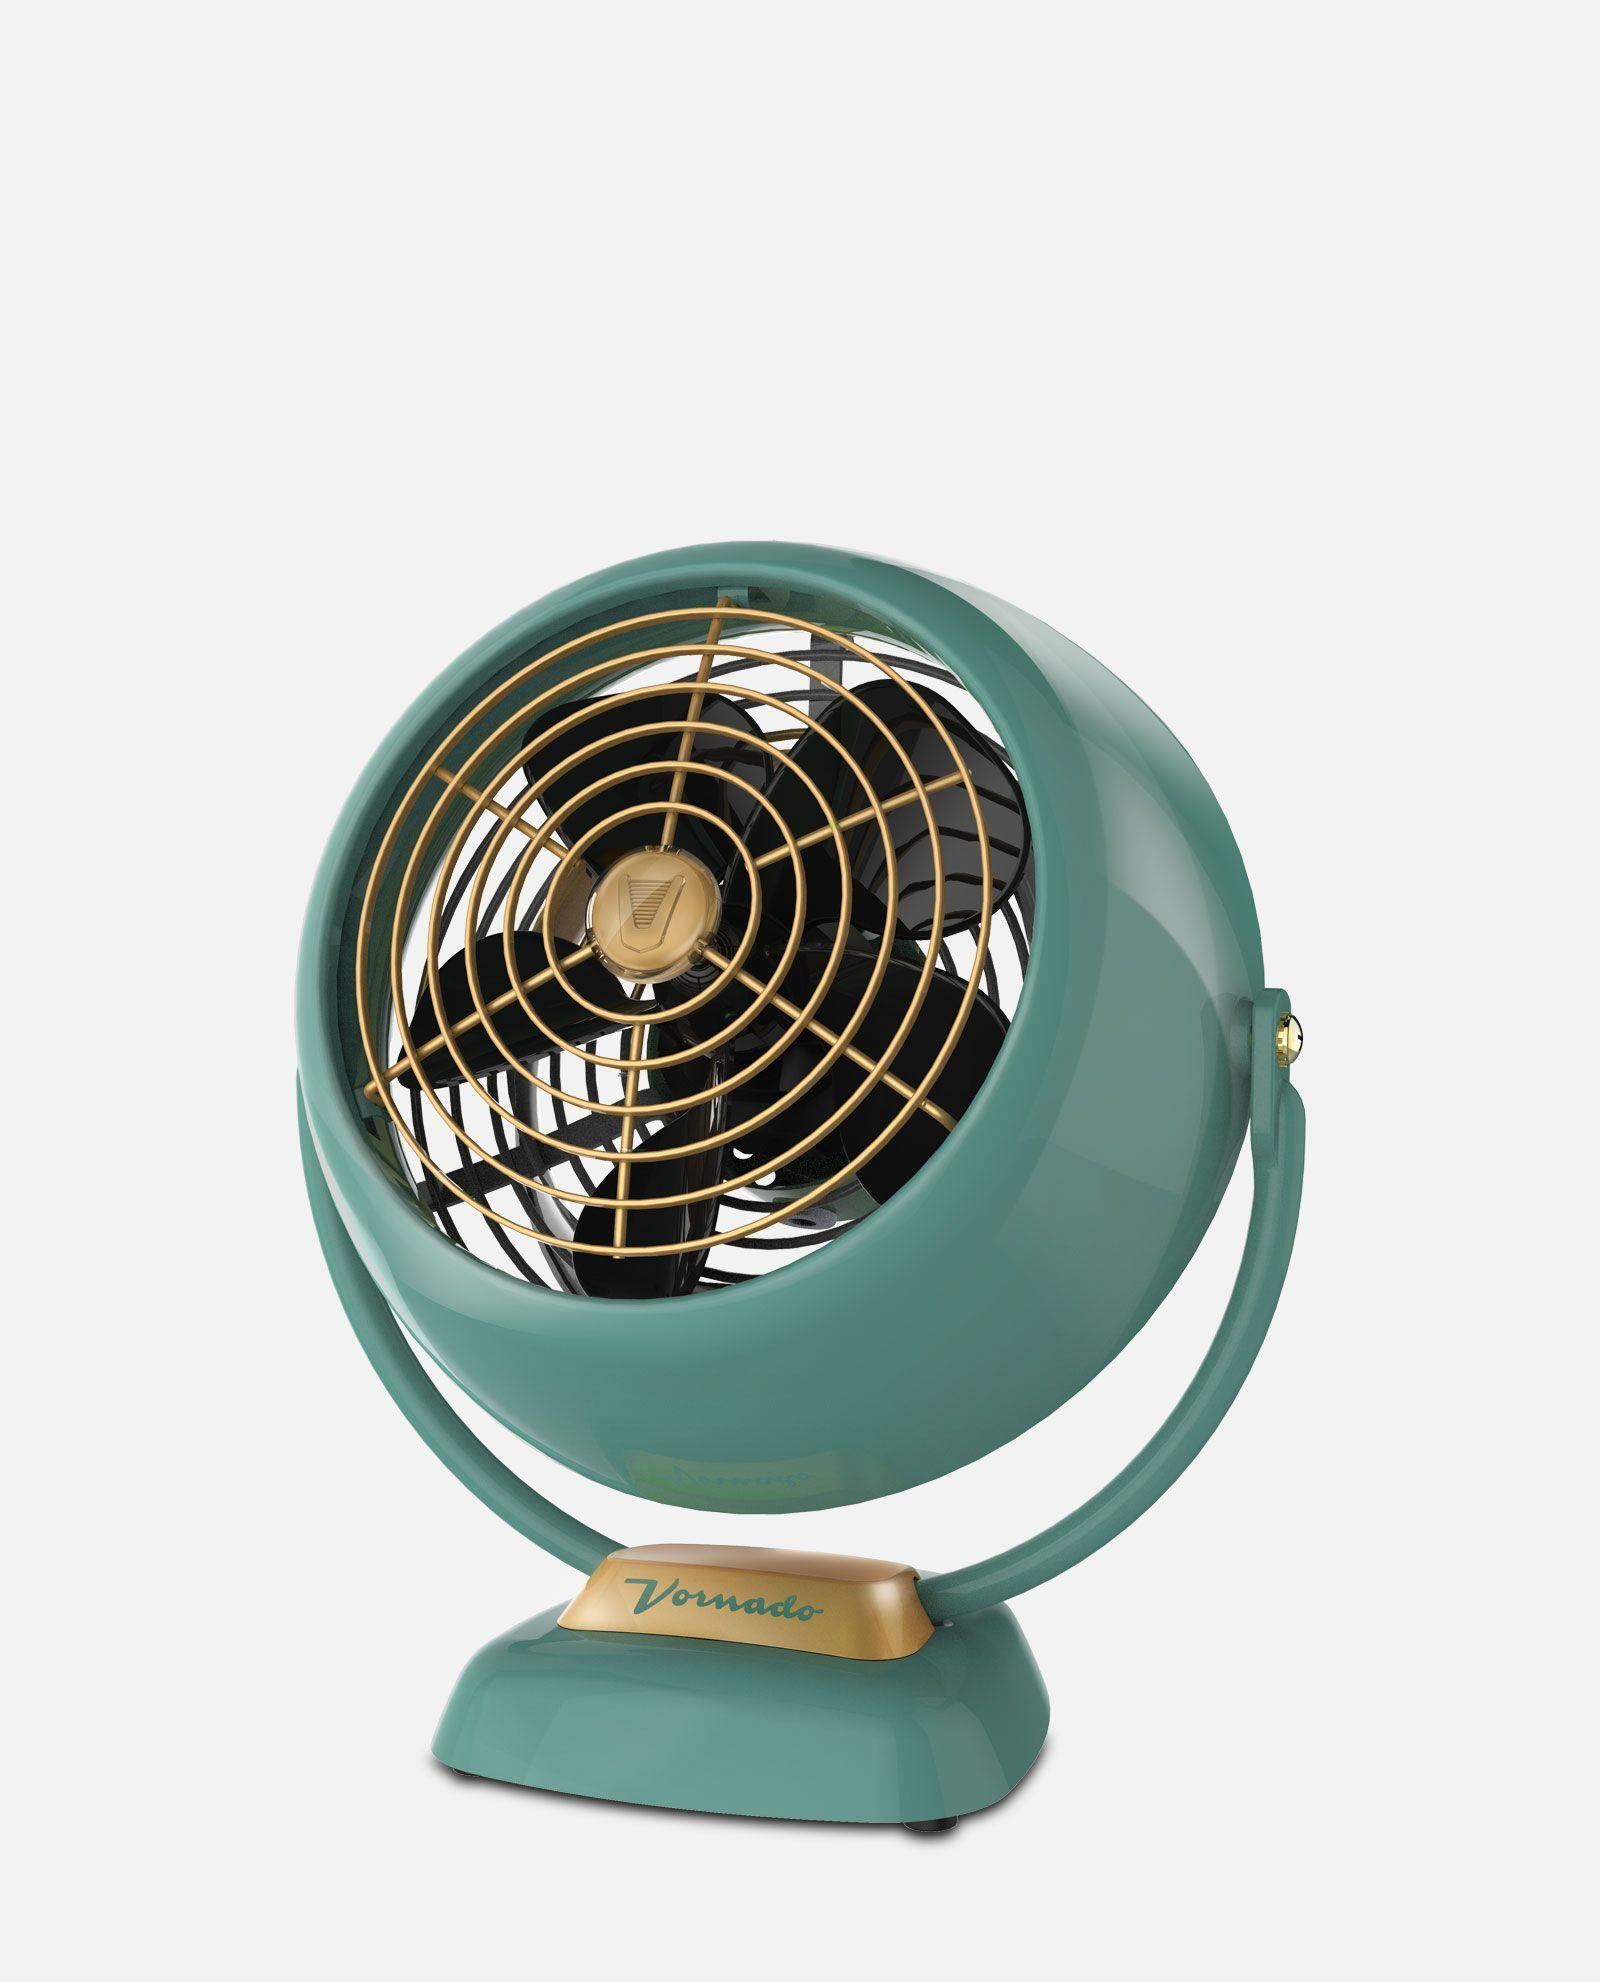 vfanJr Green Hero vfan jr vintage air circulator vornado airmaster fan wiring diagram at panicattacktreatment.co